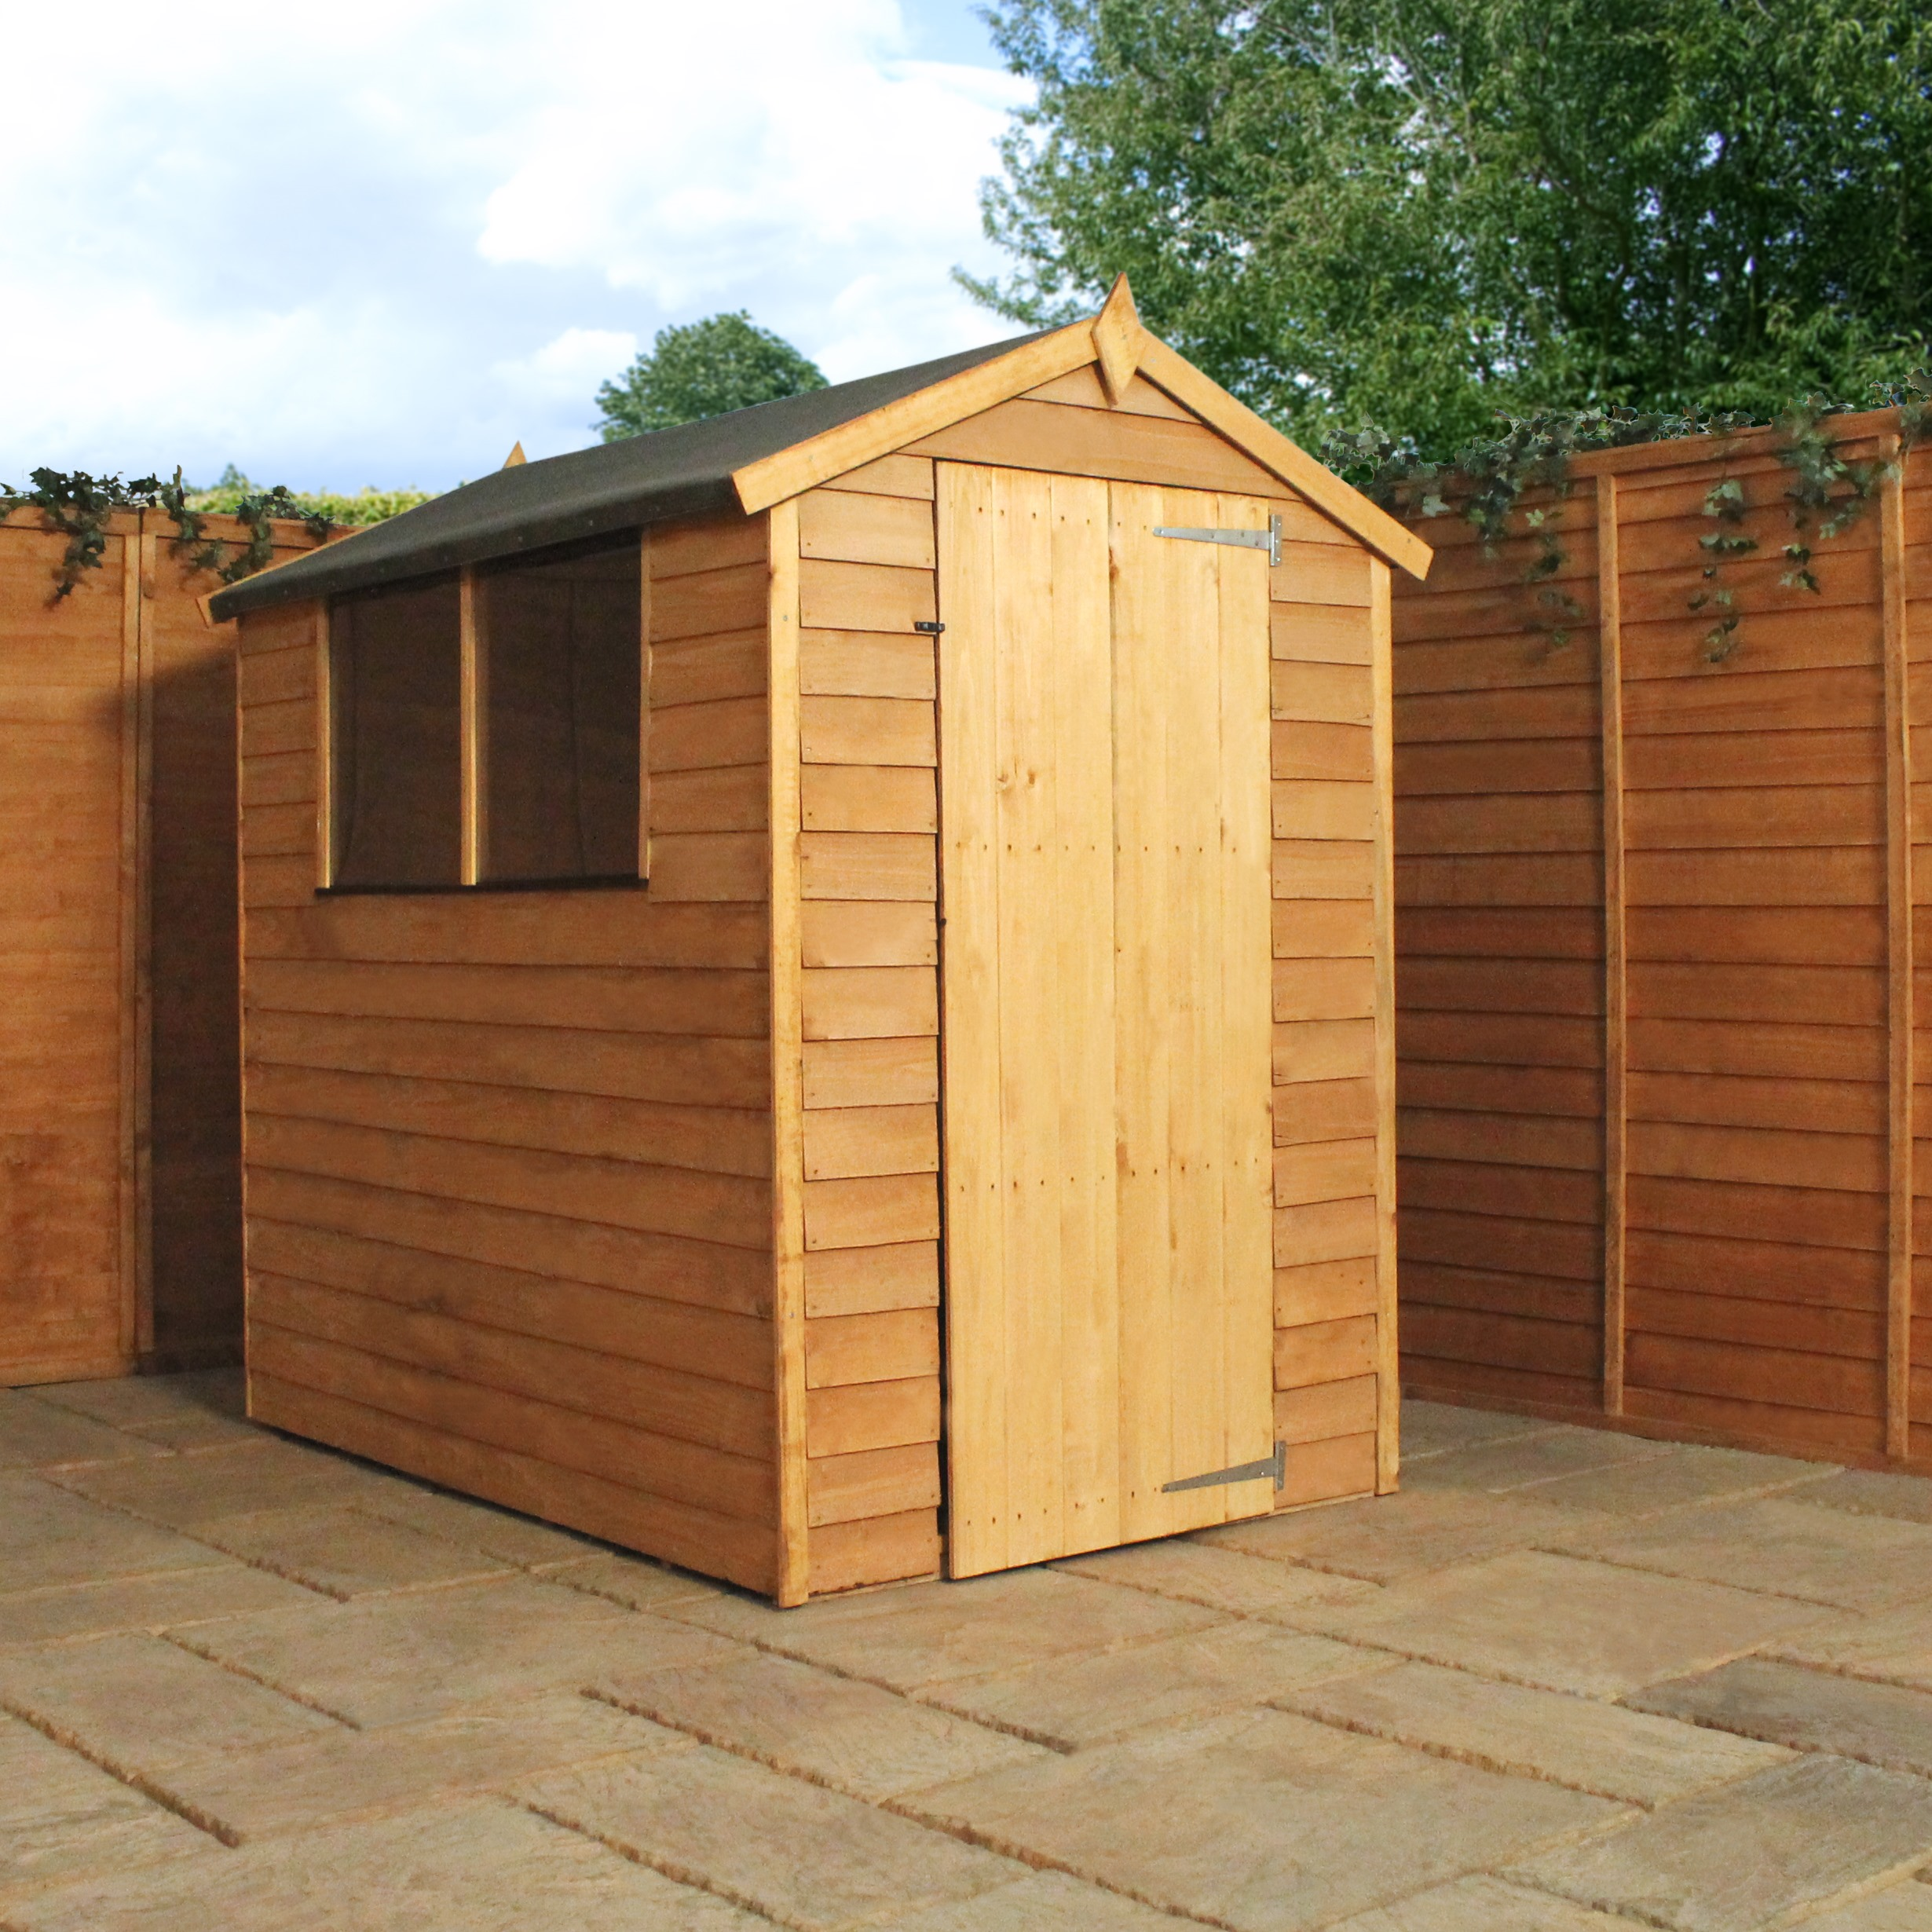 Shedswarehousecom Oxford 6ft X 4ft 179m X 131m Super Saver Overlap Apex Shed With Single Door 2 Windows 10mm Solid Osb Floor